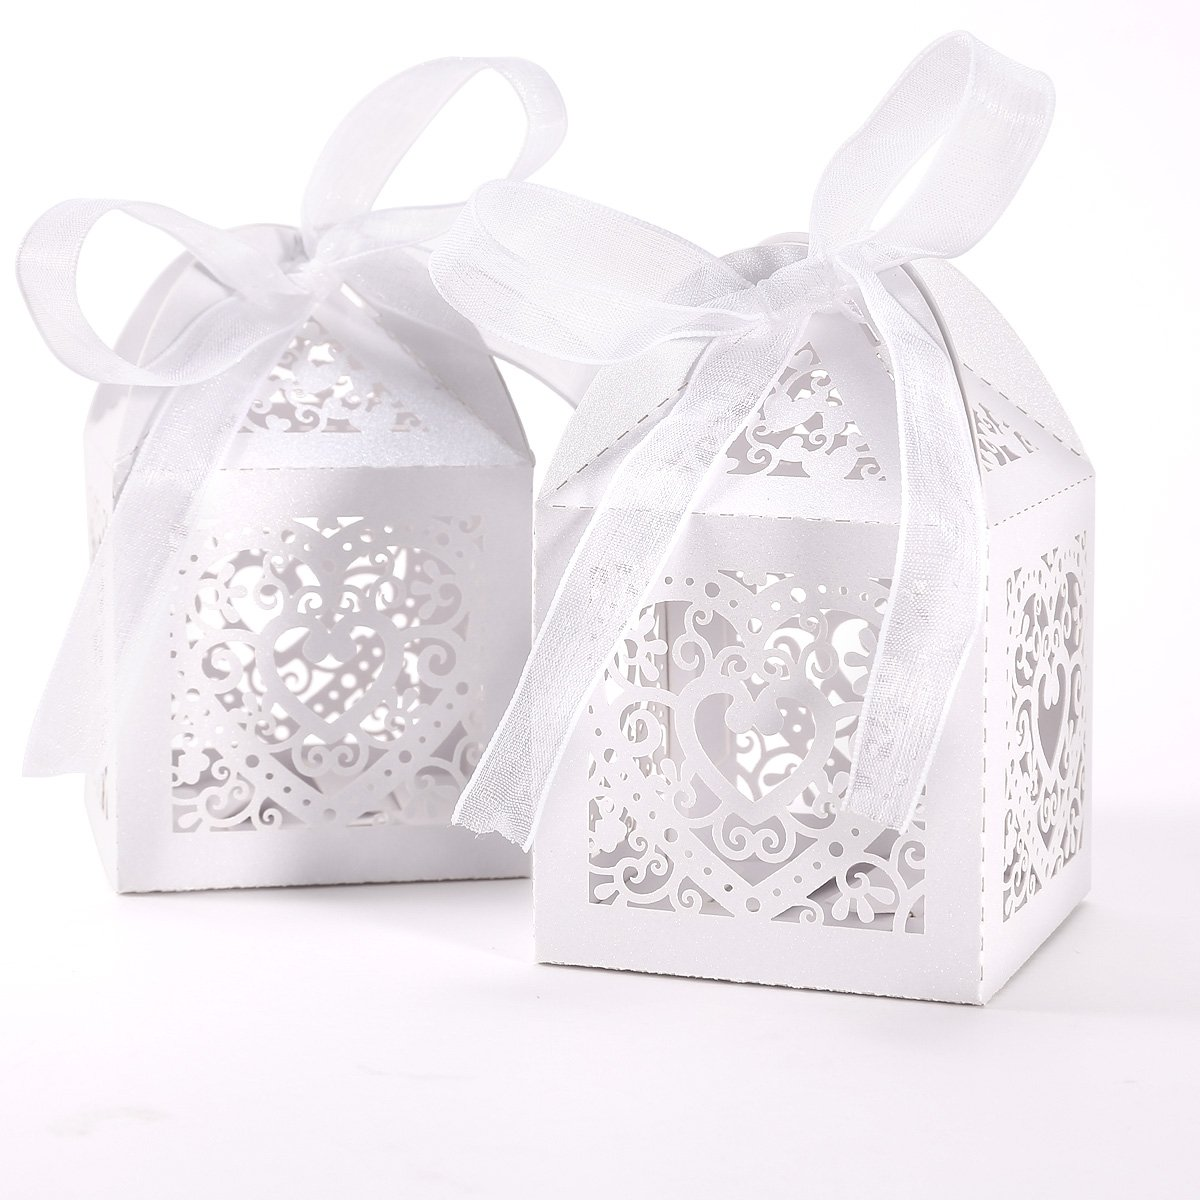 50pcs Laser Cut Wedding Hollow Love Heart Wedding Favor Candy Gifts Boxes Ivory White SpecialShare NTWNMJHGDU797